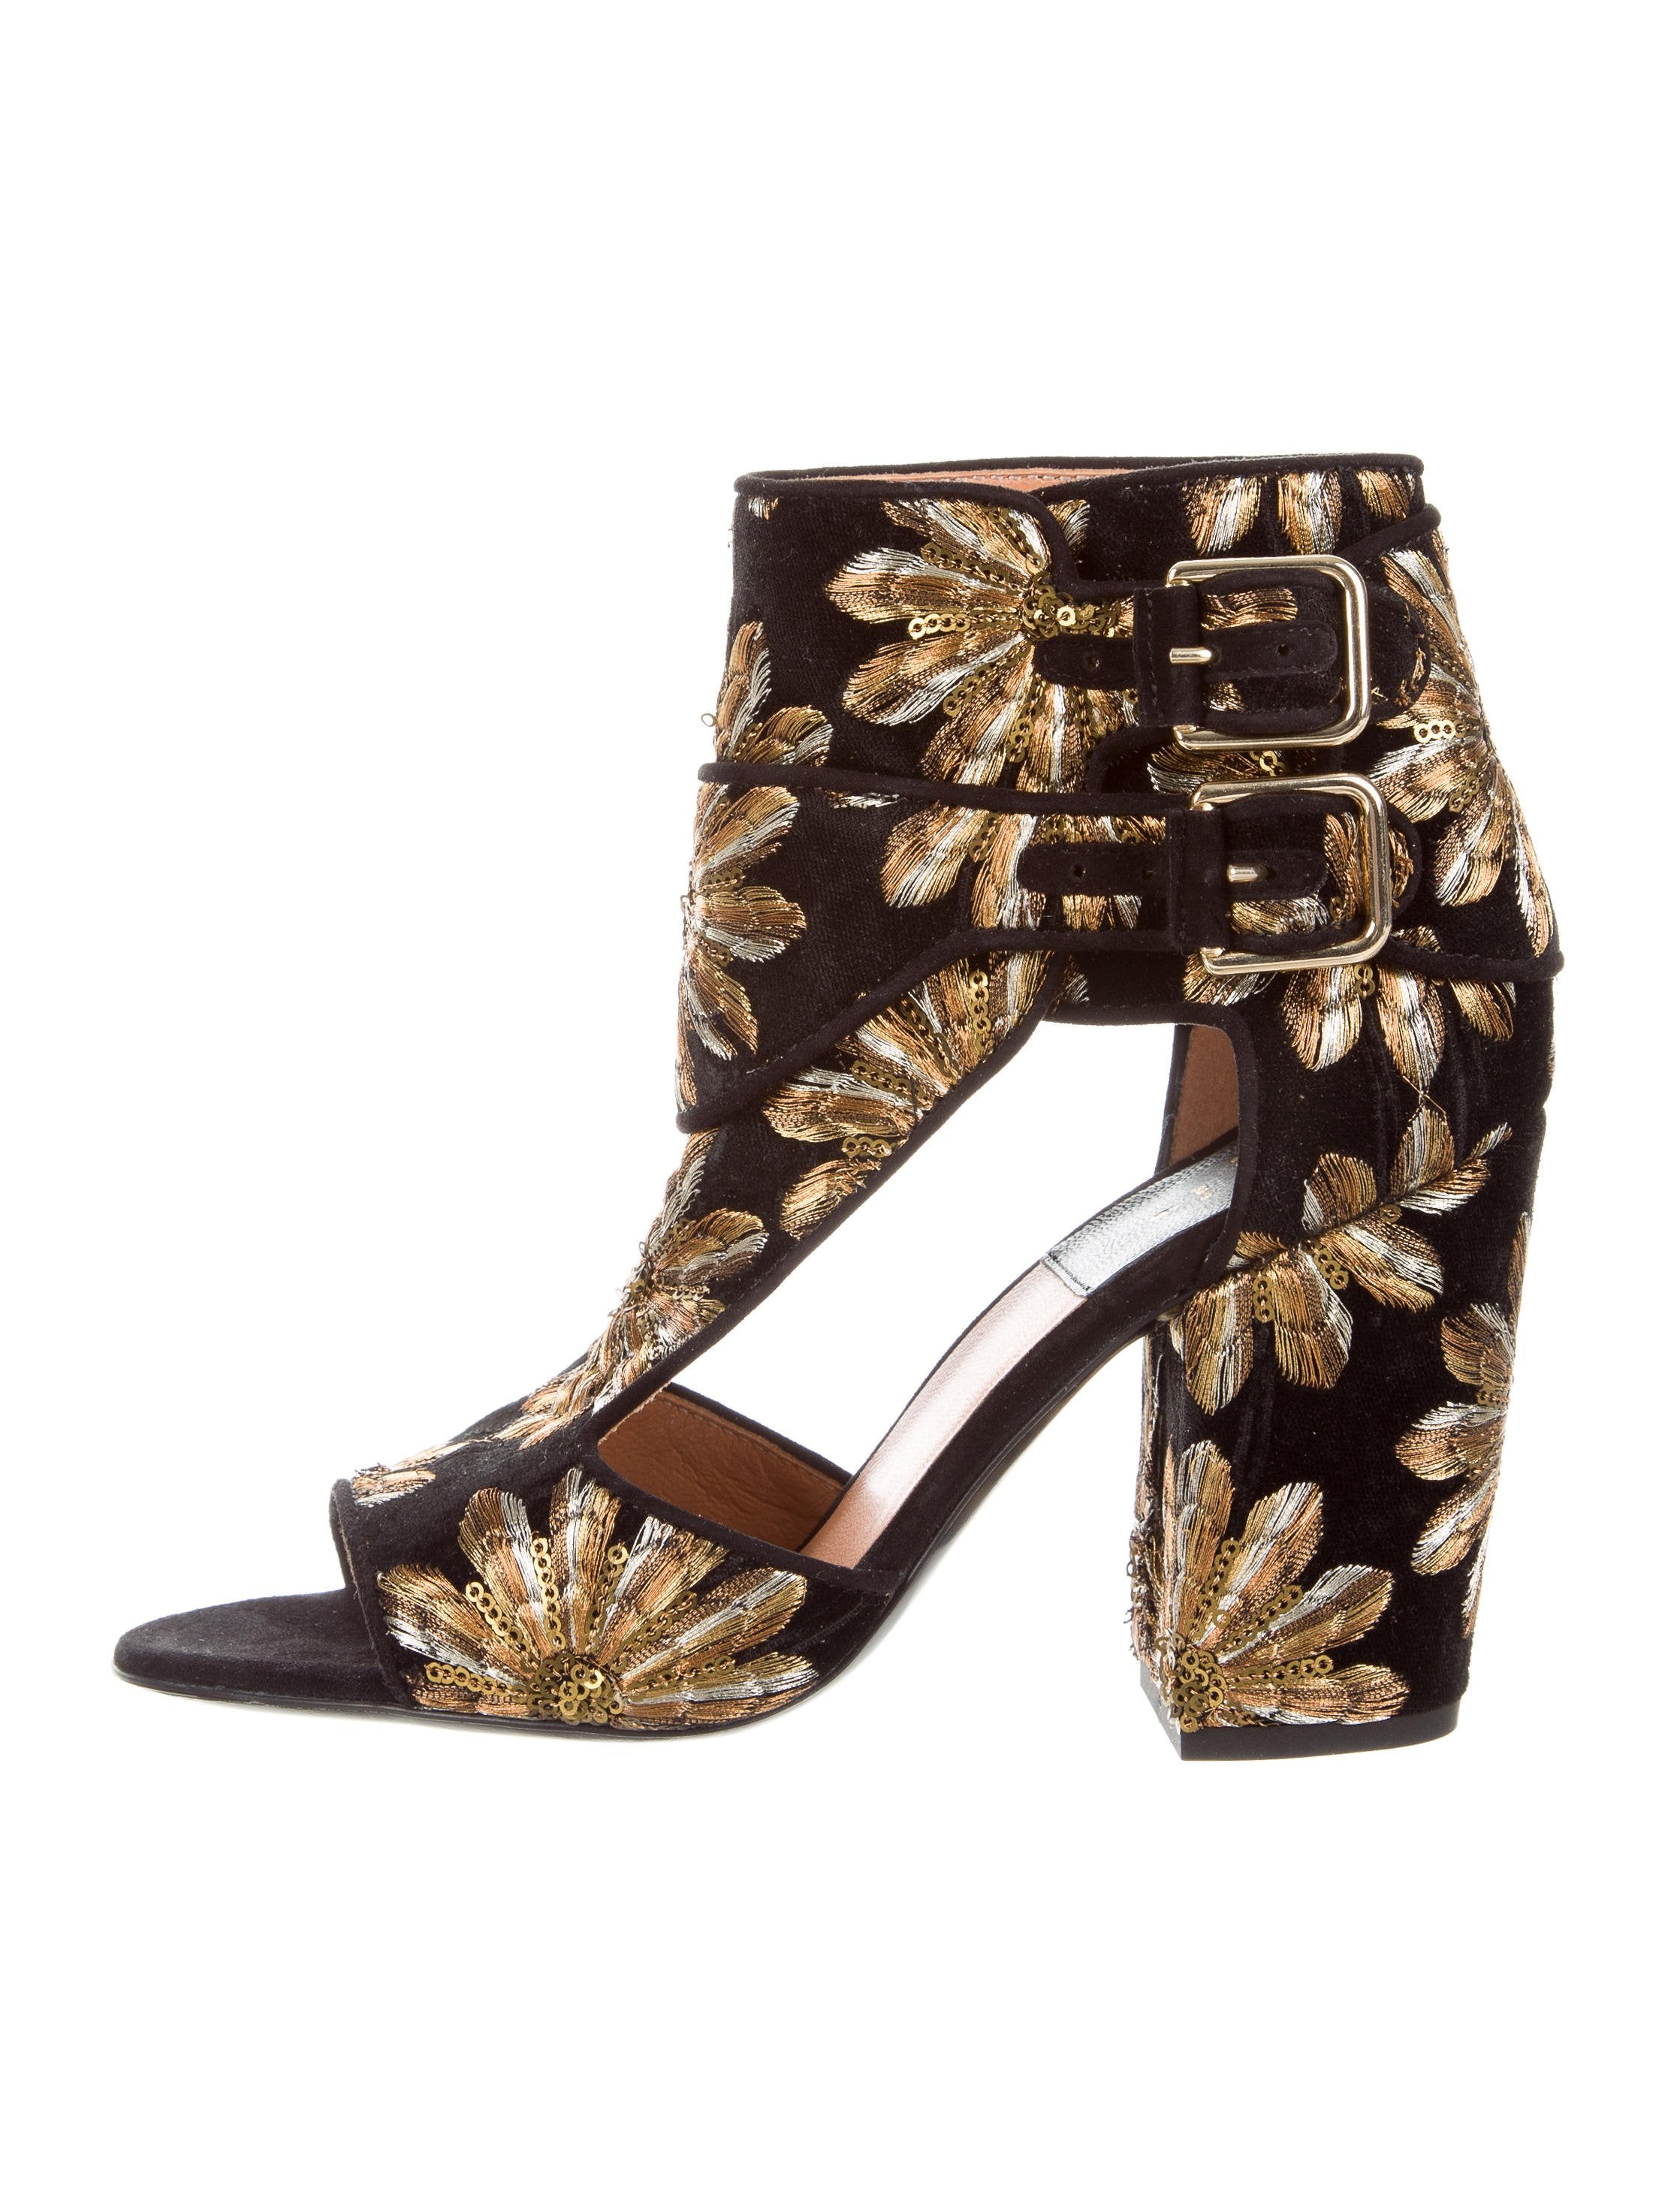 Laurence Dacade Floral-Embroidered Velvet Sandals w/ Tags where can you find outlet sale P40Zu9DQ